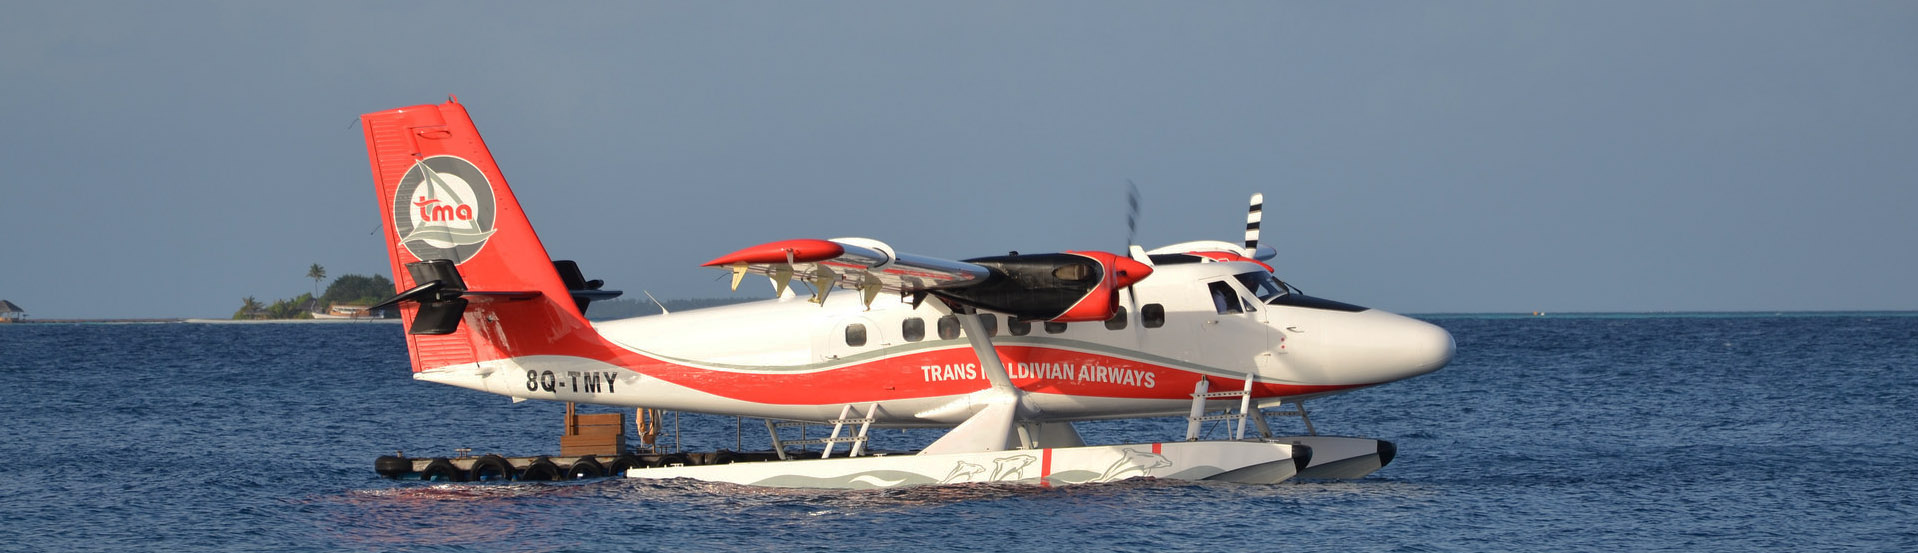 Trans Maldivian Airways Twin Otter at the dock